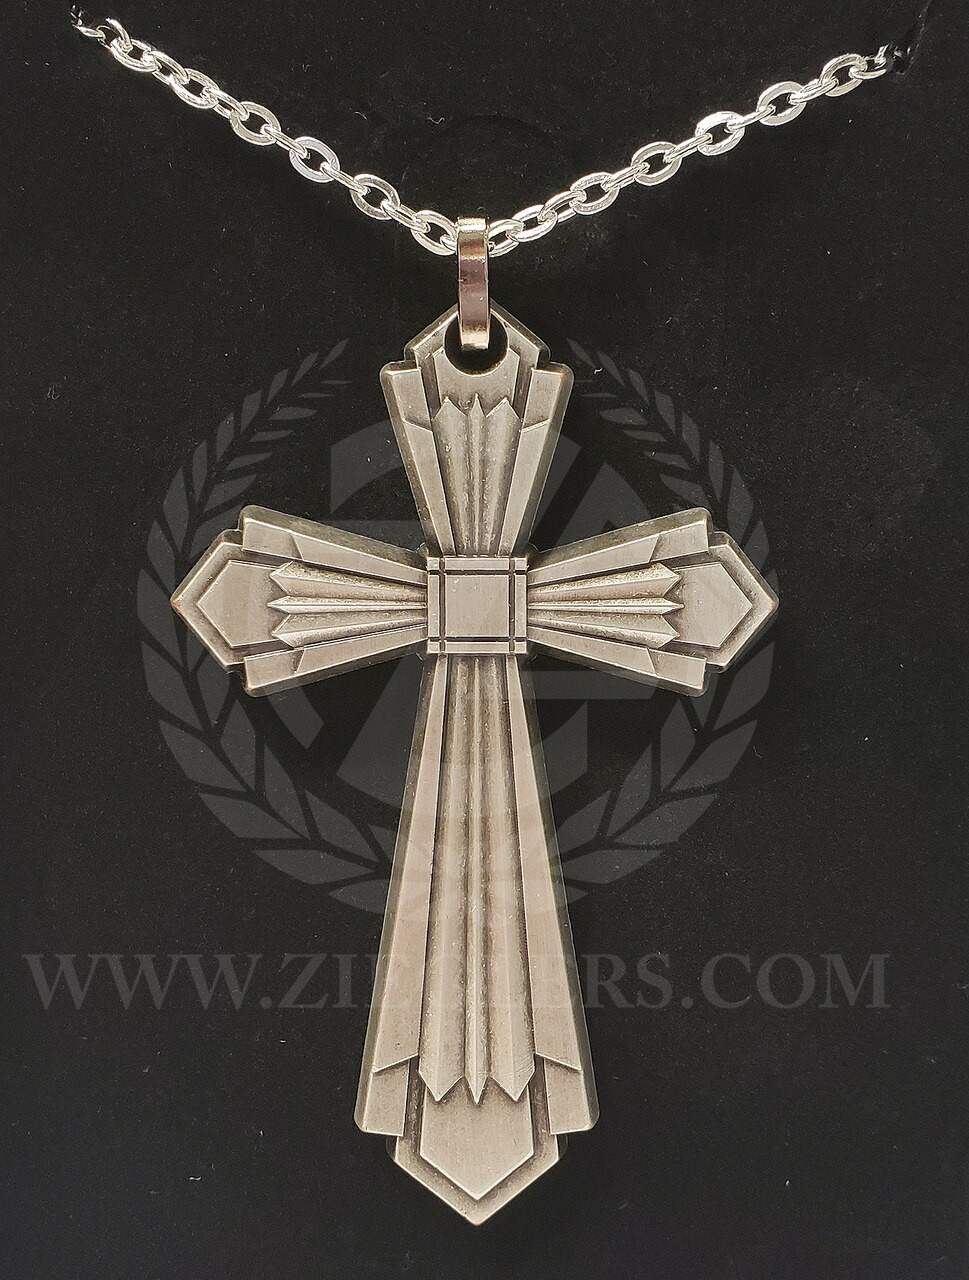 350b2ae4612 Pectoral Cross made of metal with silver plate measures 3 by two inches  comes on 31